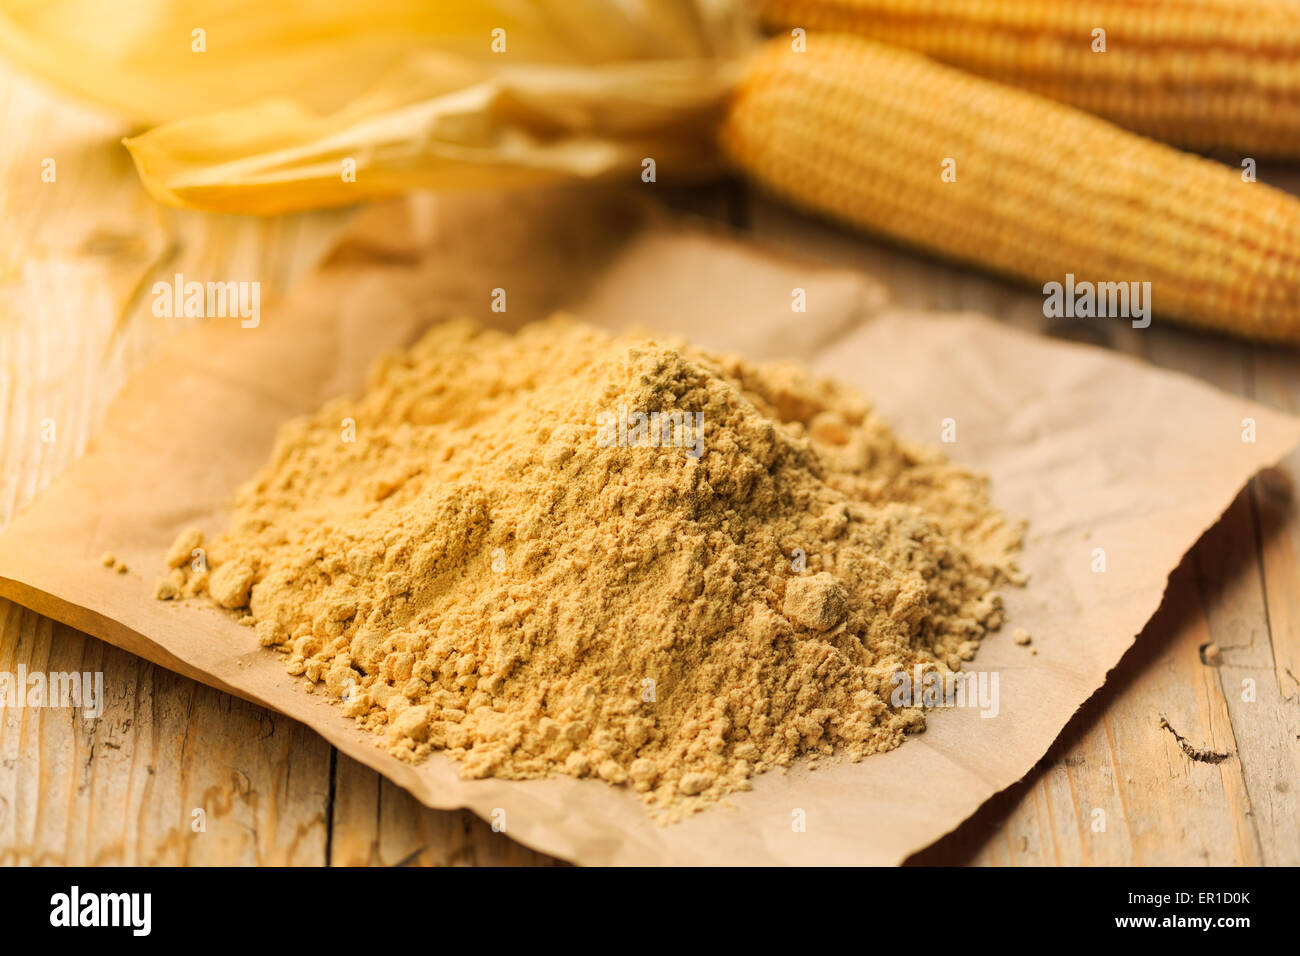 Farina bona ( good flour ) a traditional product from Ticino, Switzerland, is a type of corn flour made fine milling - Stock Image